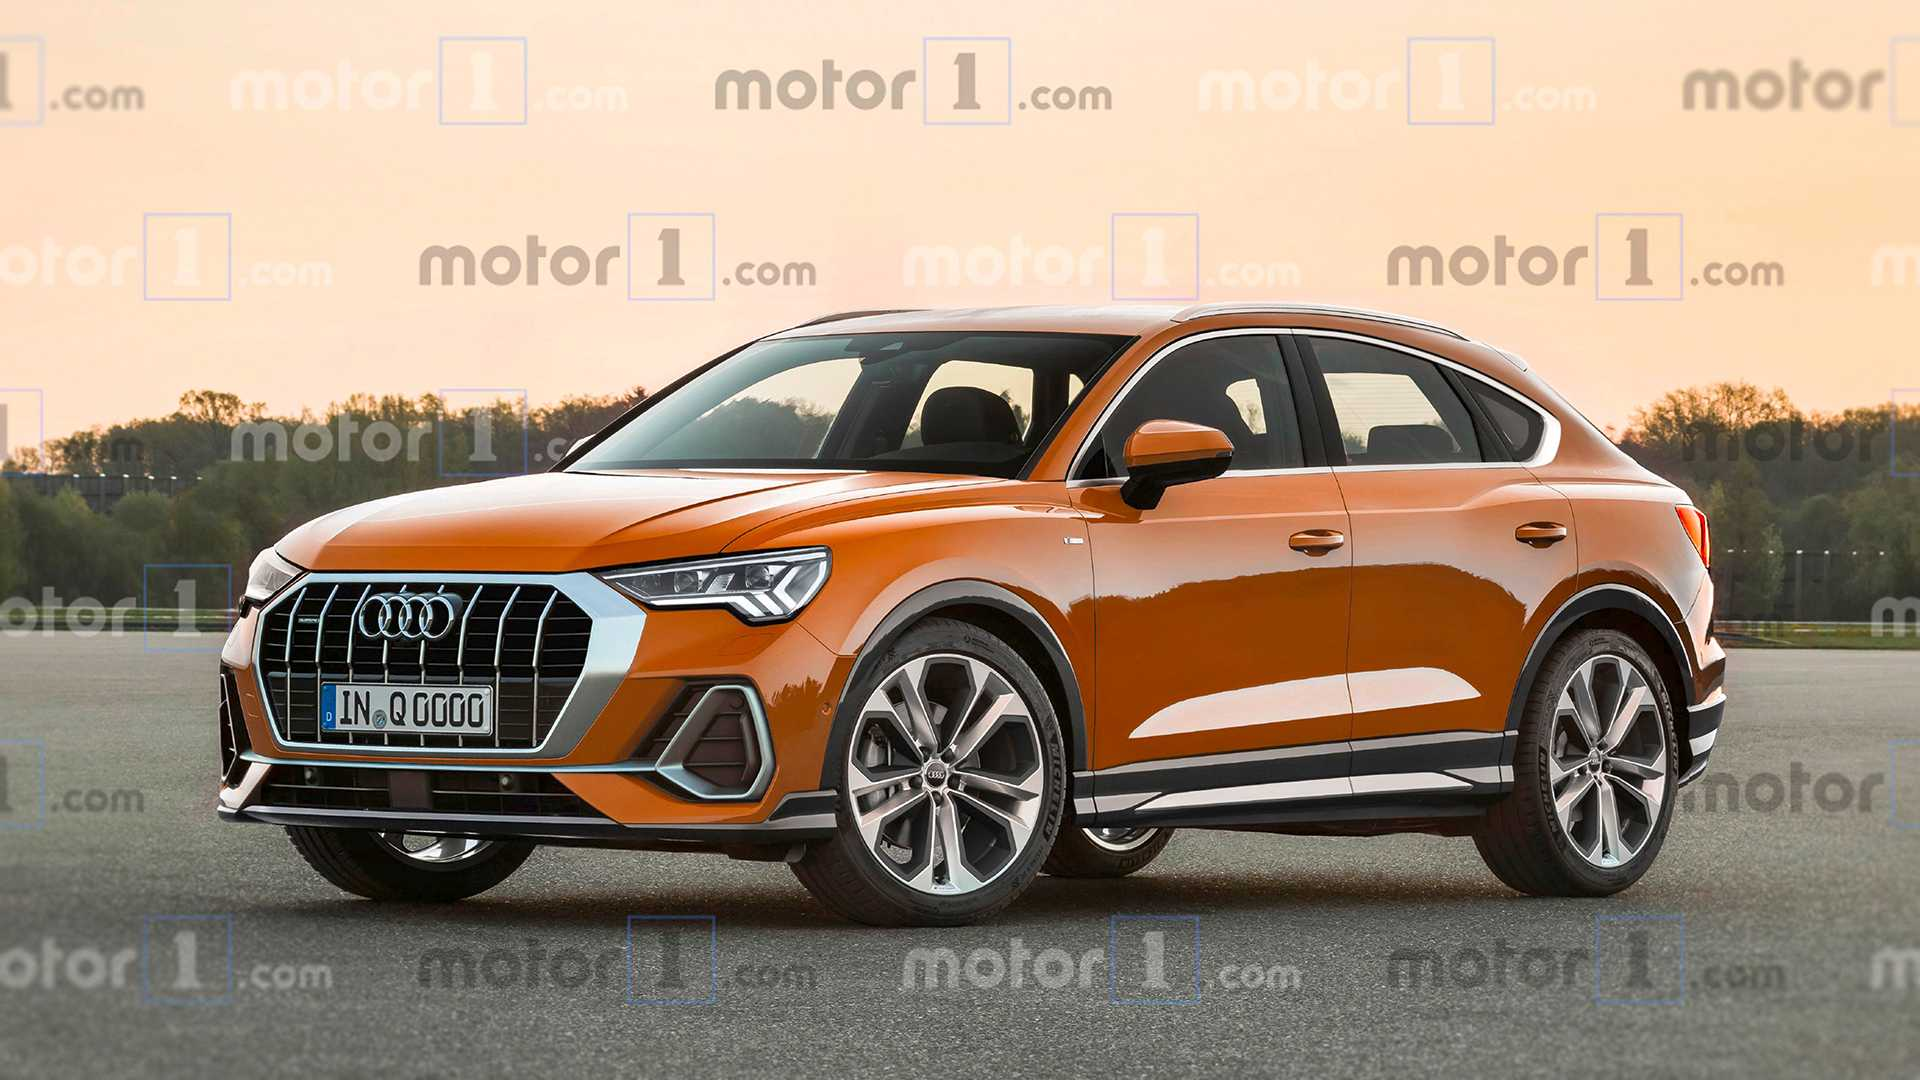 2020 Audi Q4 Unveiled! Release Date And Price >> First Ever Audi Q4 Loses All The Disguise In New Rendering